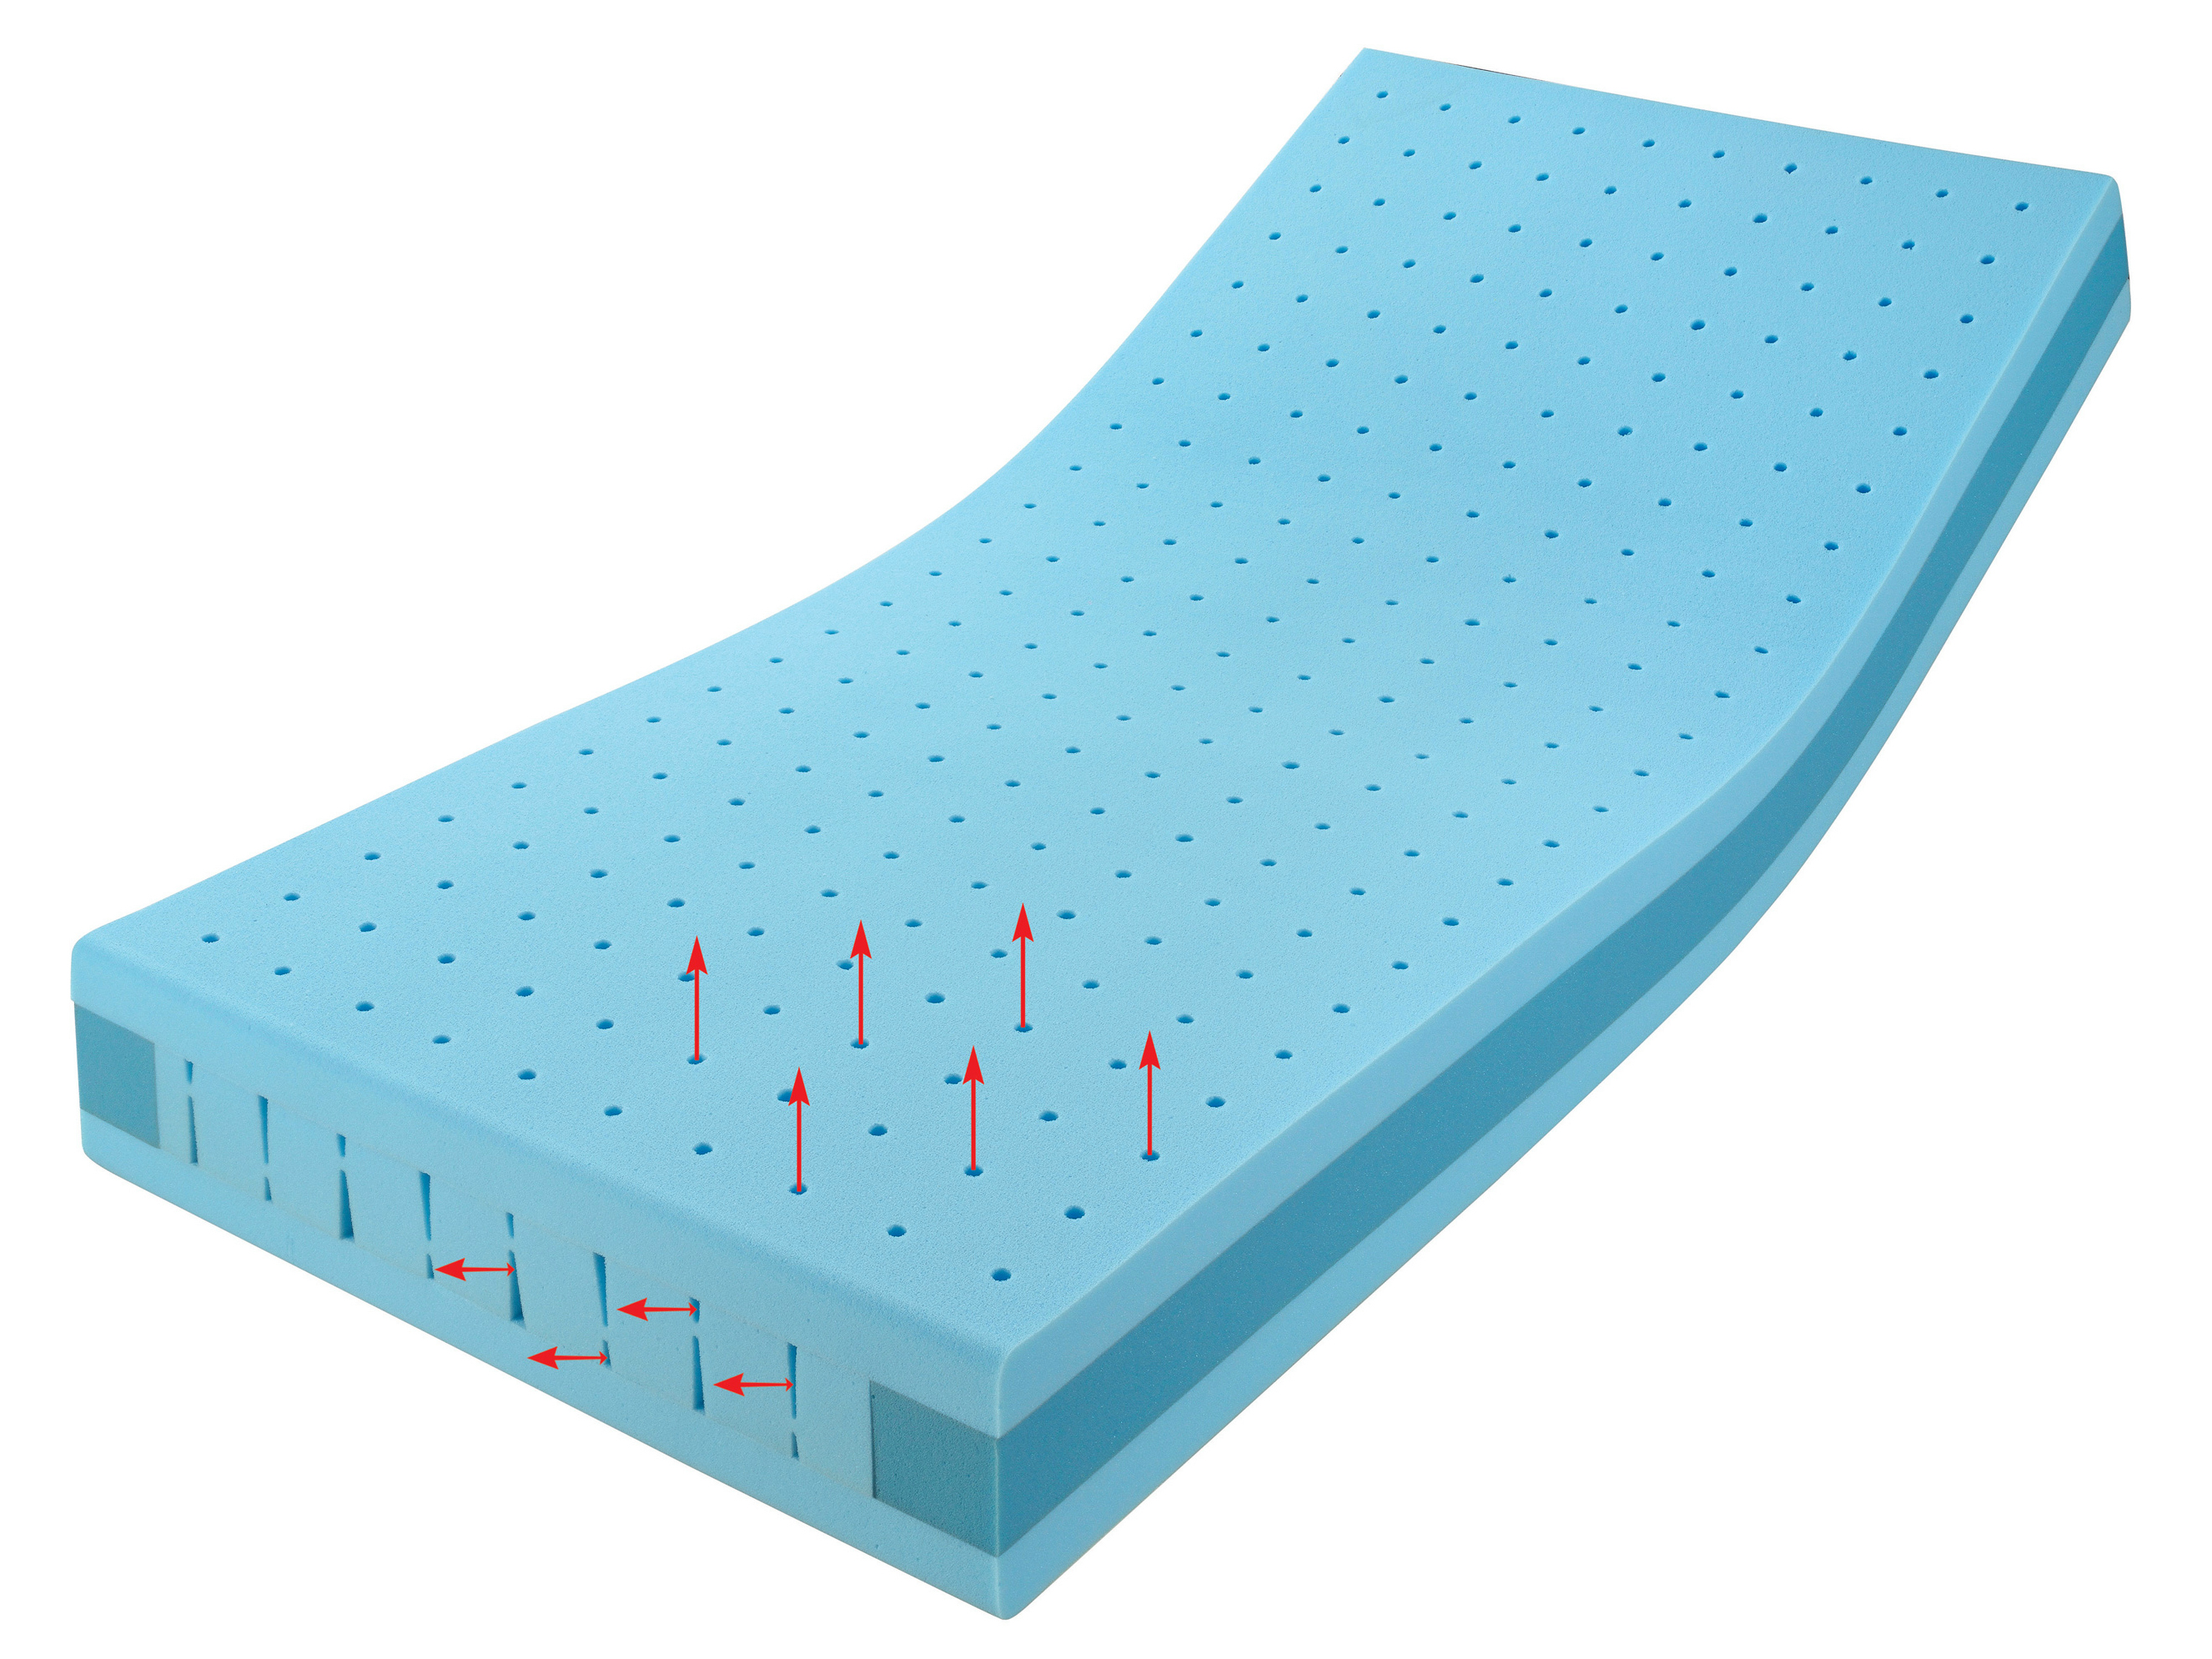 Polyurethane Foam Mattress : Polyurethane foam mattress air dream suite by hülsta